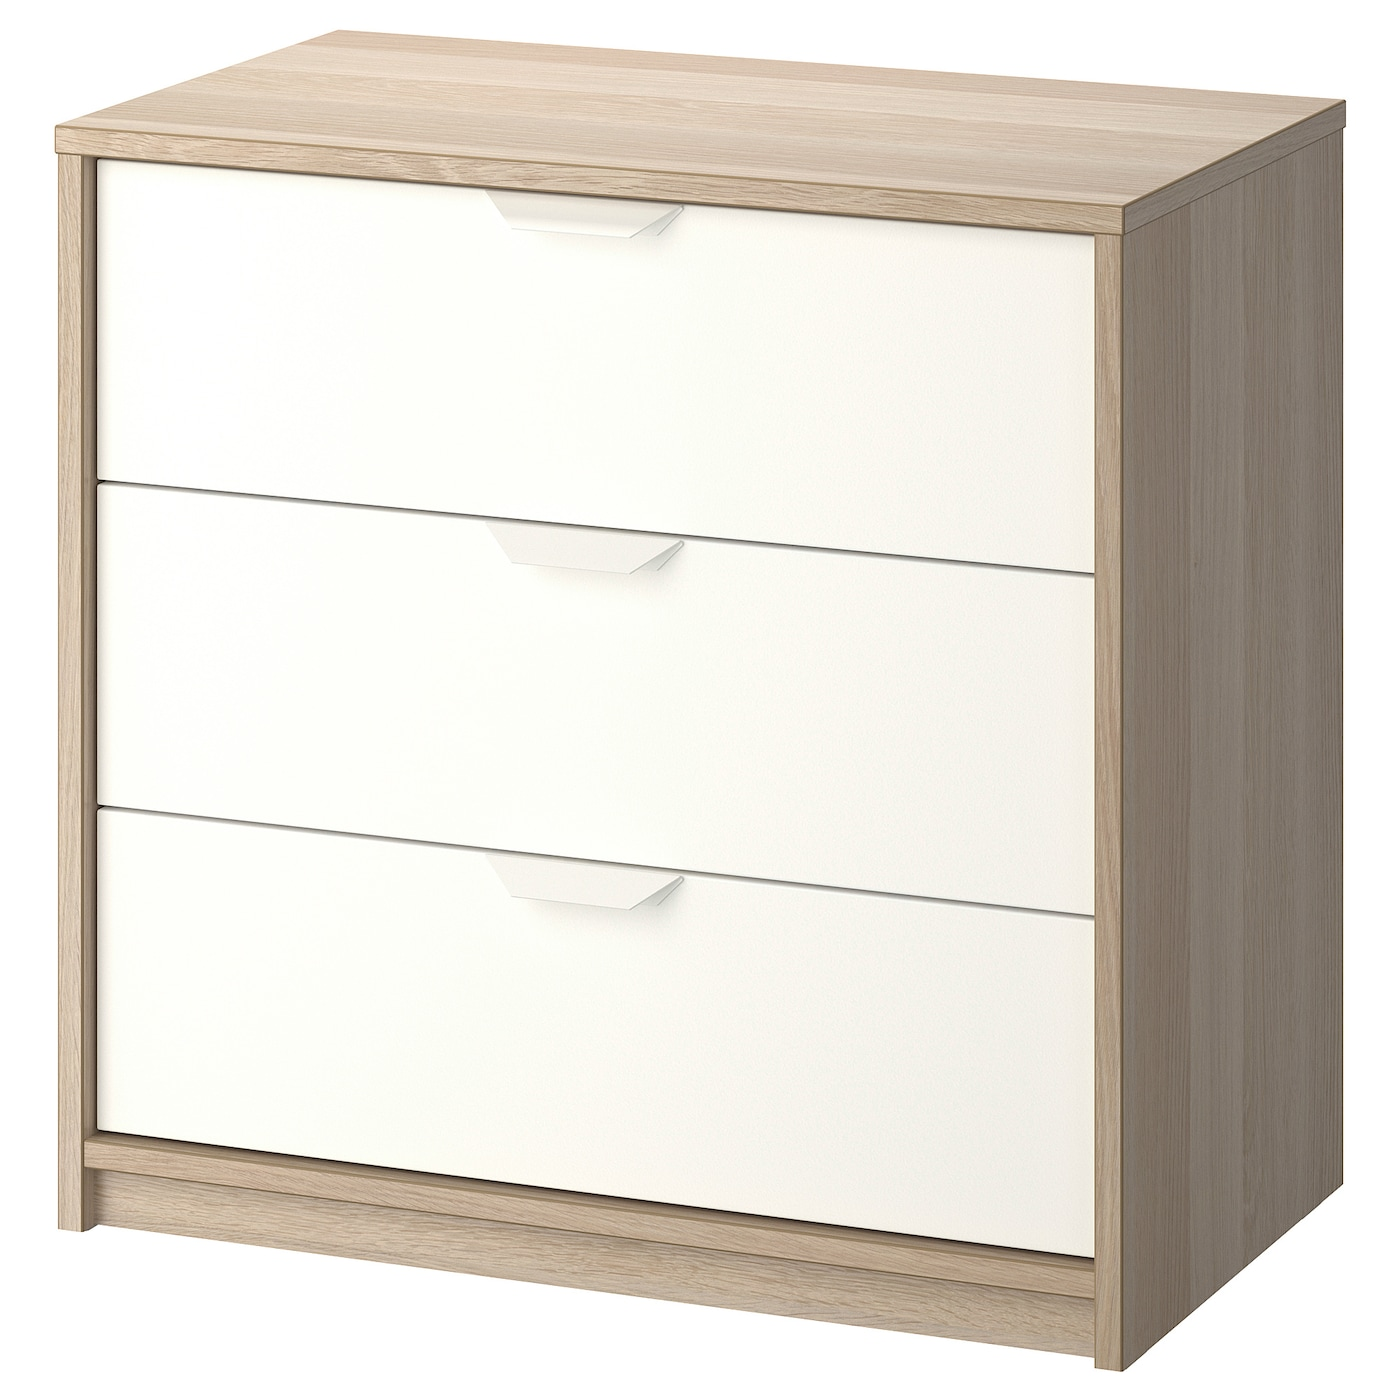 Askvoll Chest Of 3 Drawers White